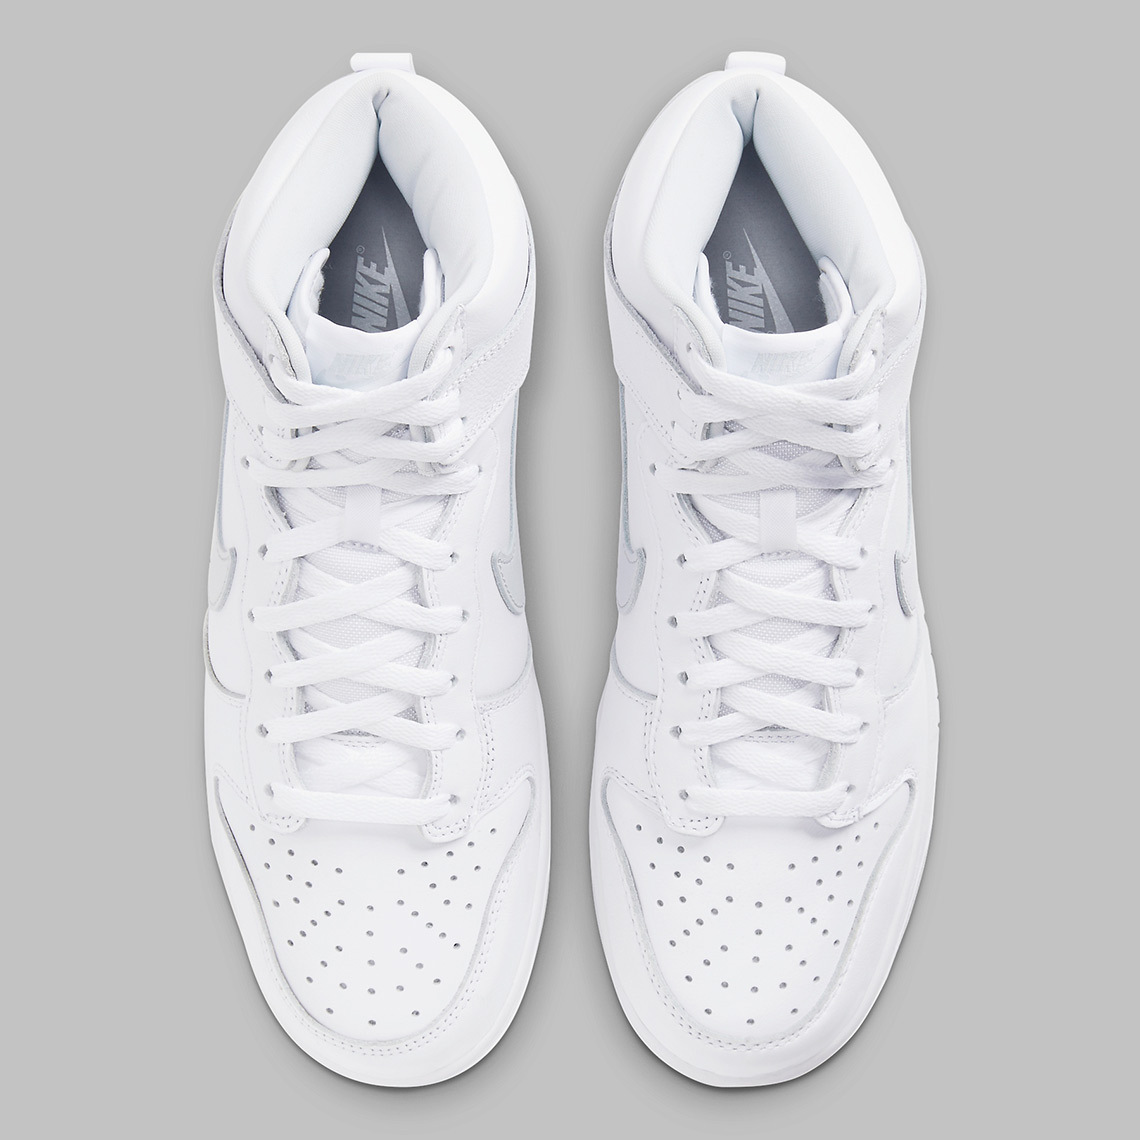 nike-dunk-high-sp-white-grey-CZ8149-101-8